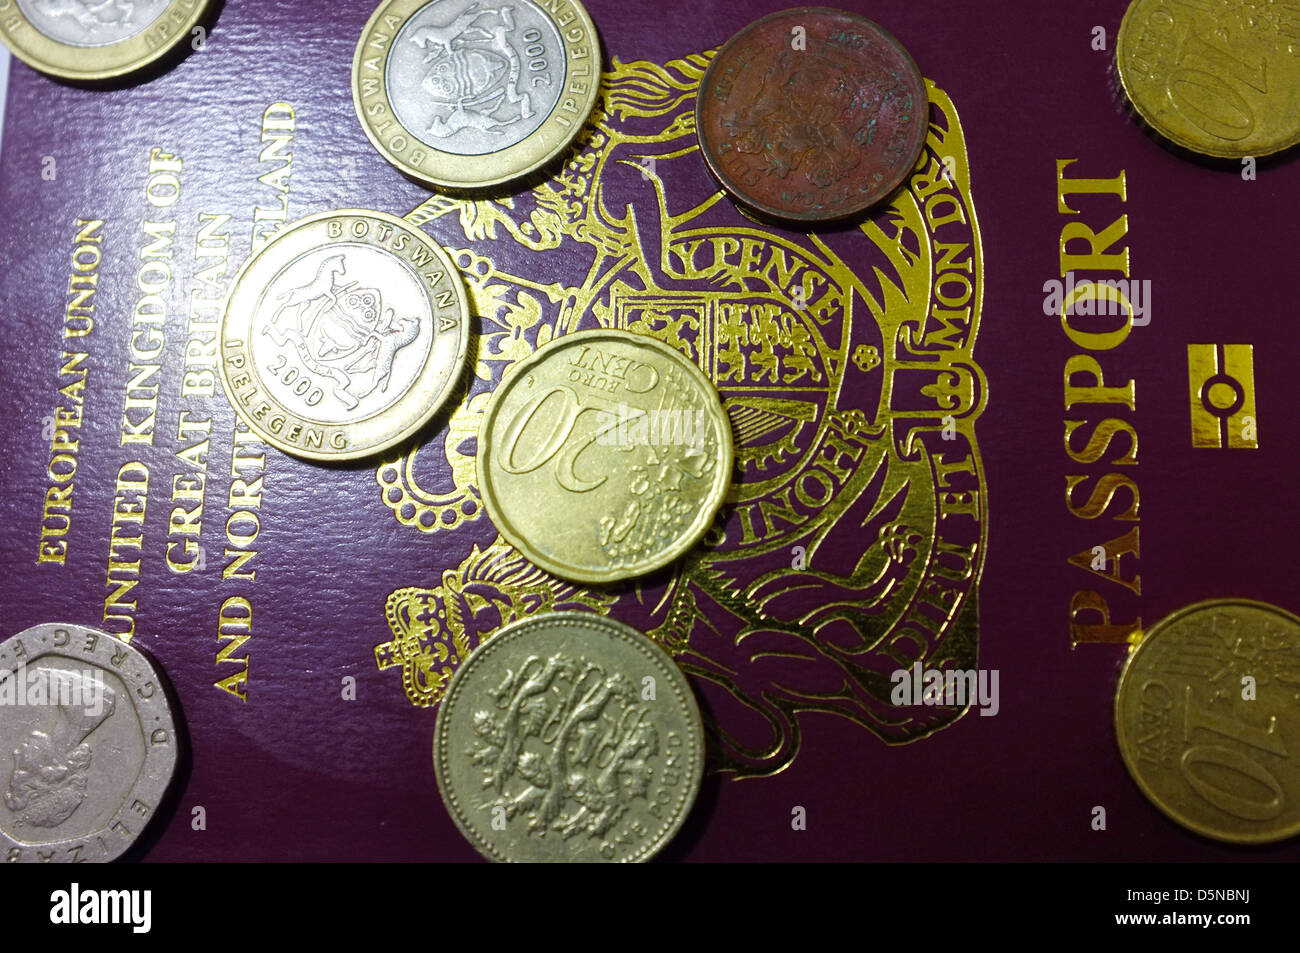 An image of the front page of a British passport covered in coins from the UK and Europe. Stock Photo